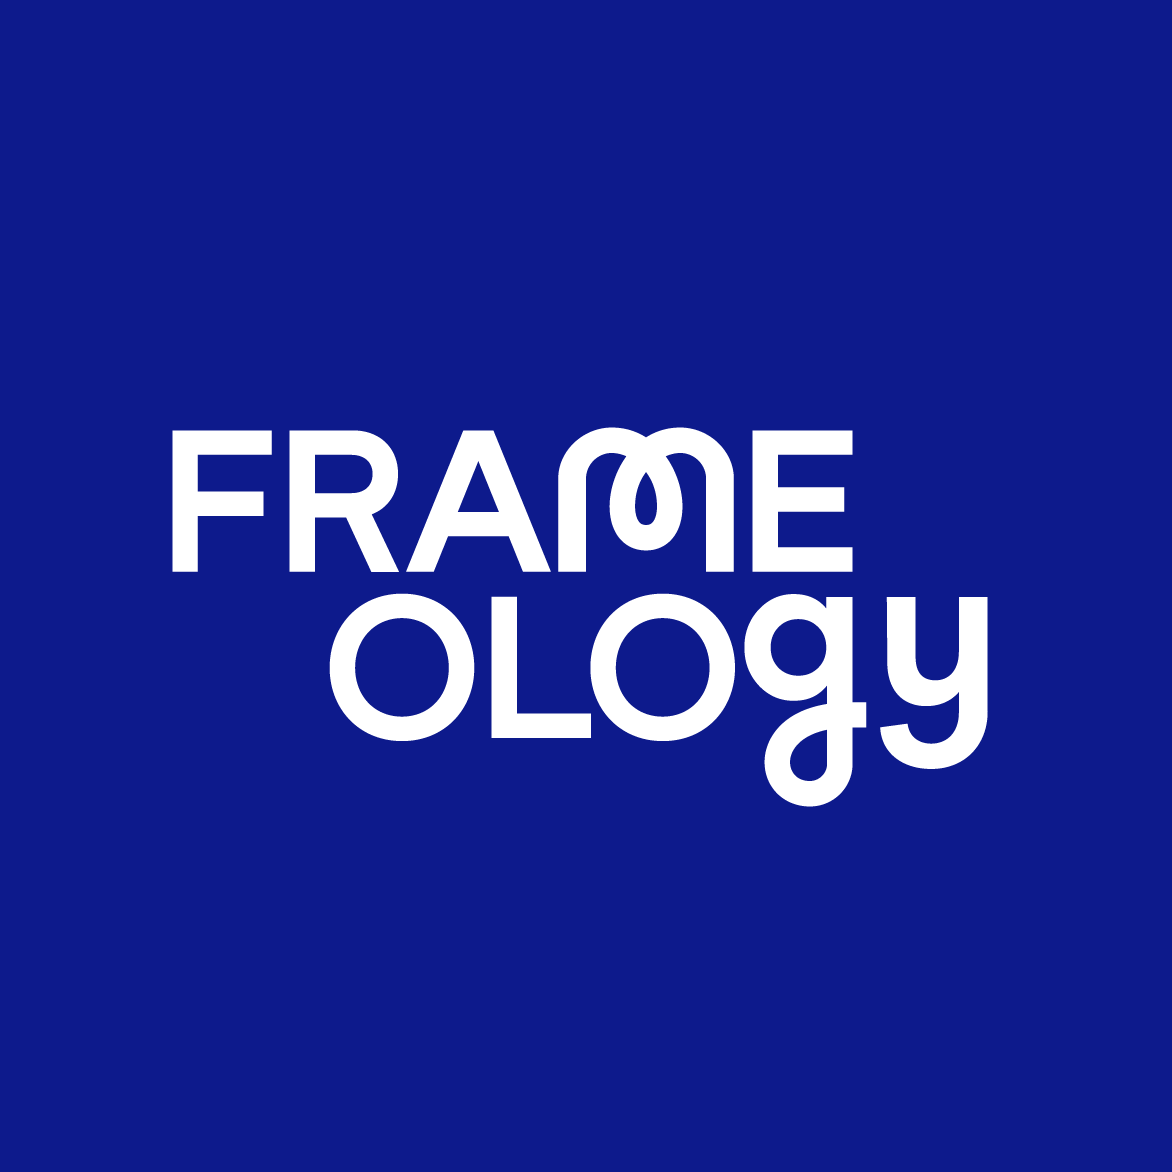 Print & Frame A Photo | Framed Prints Online | Frameology